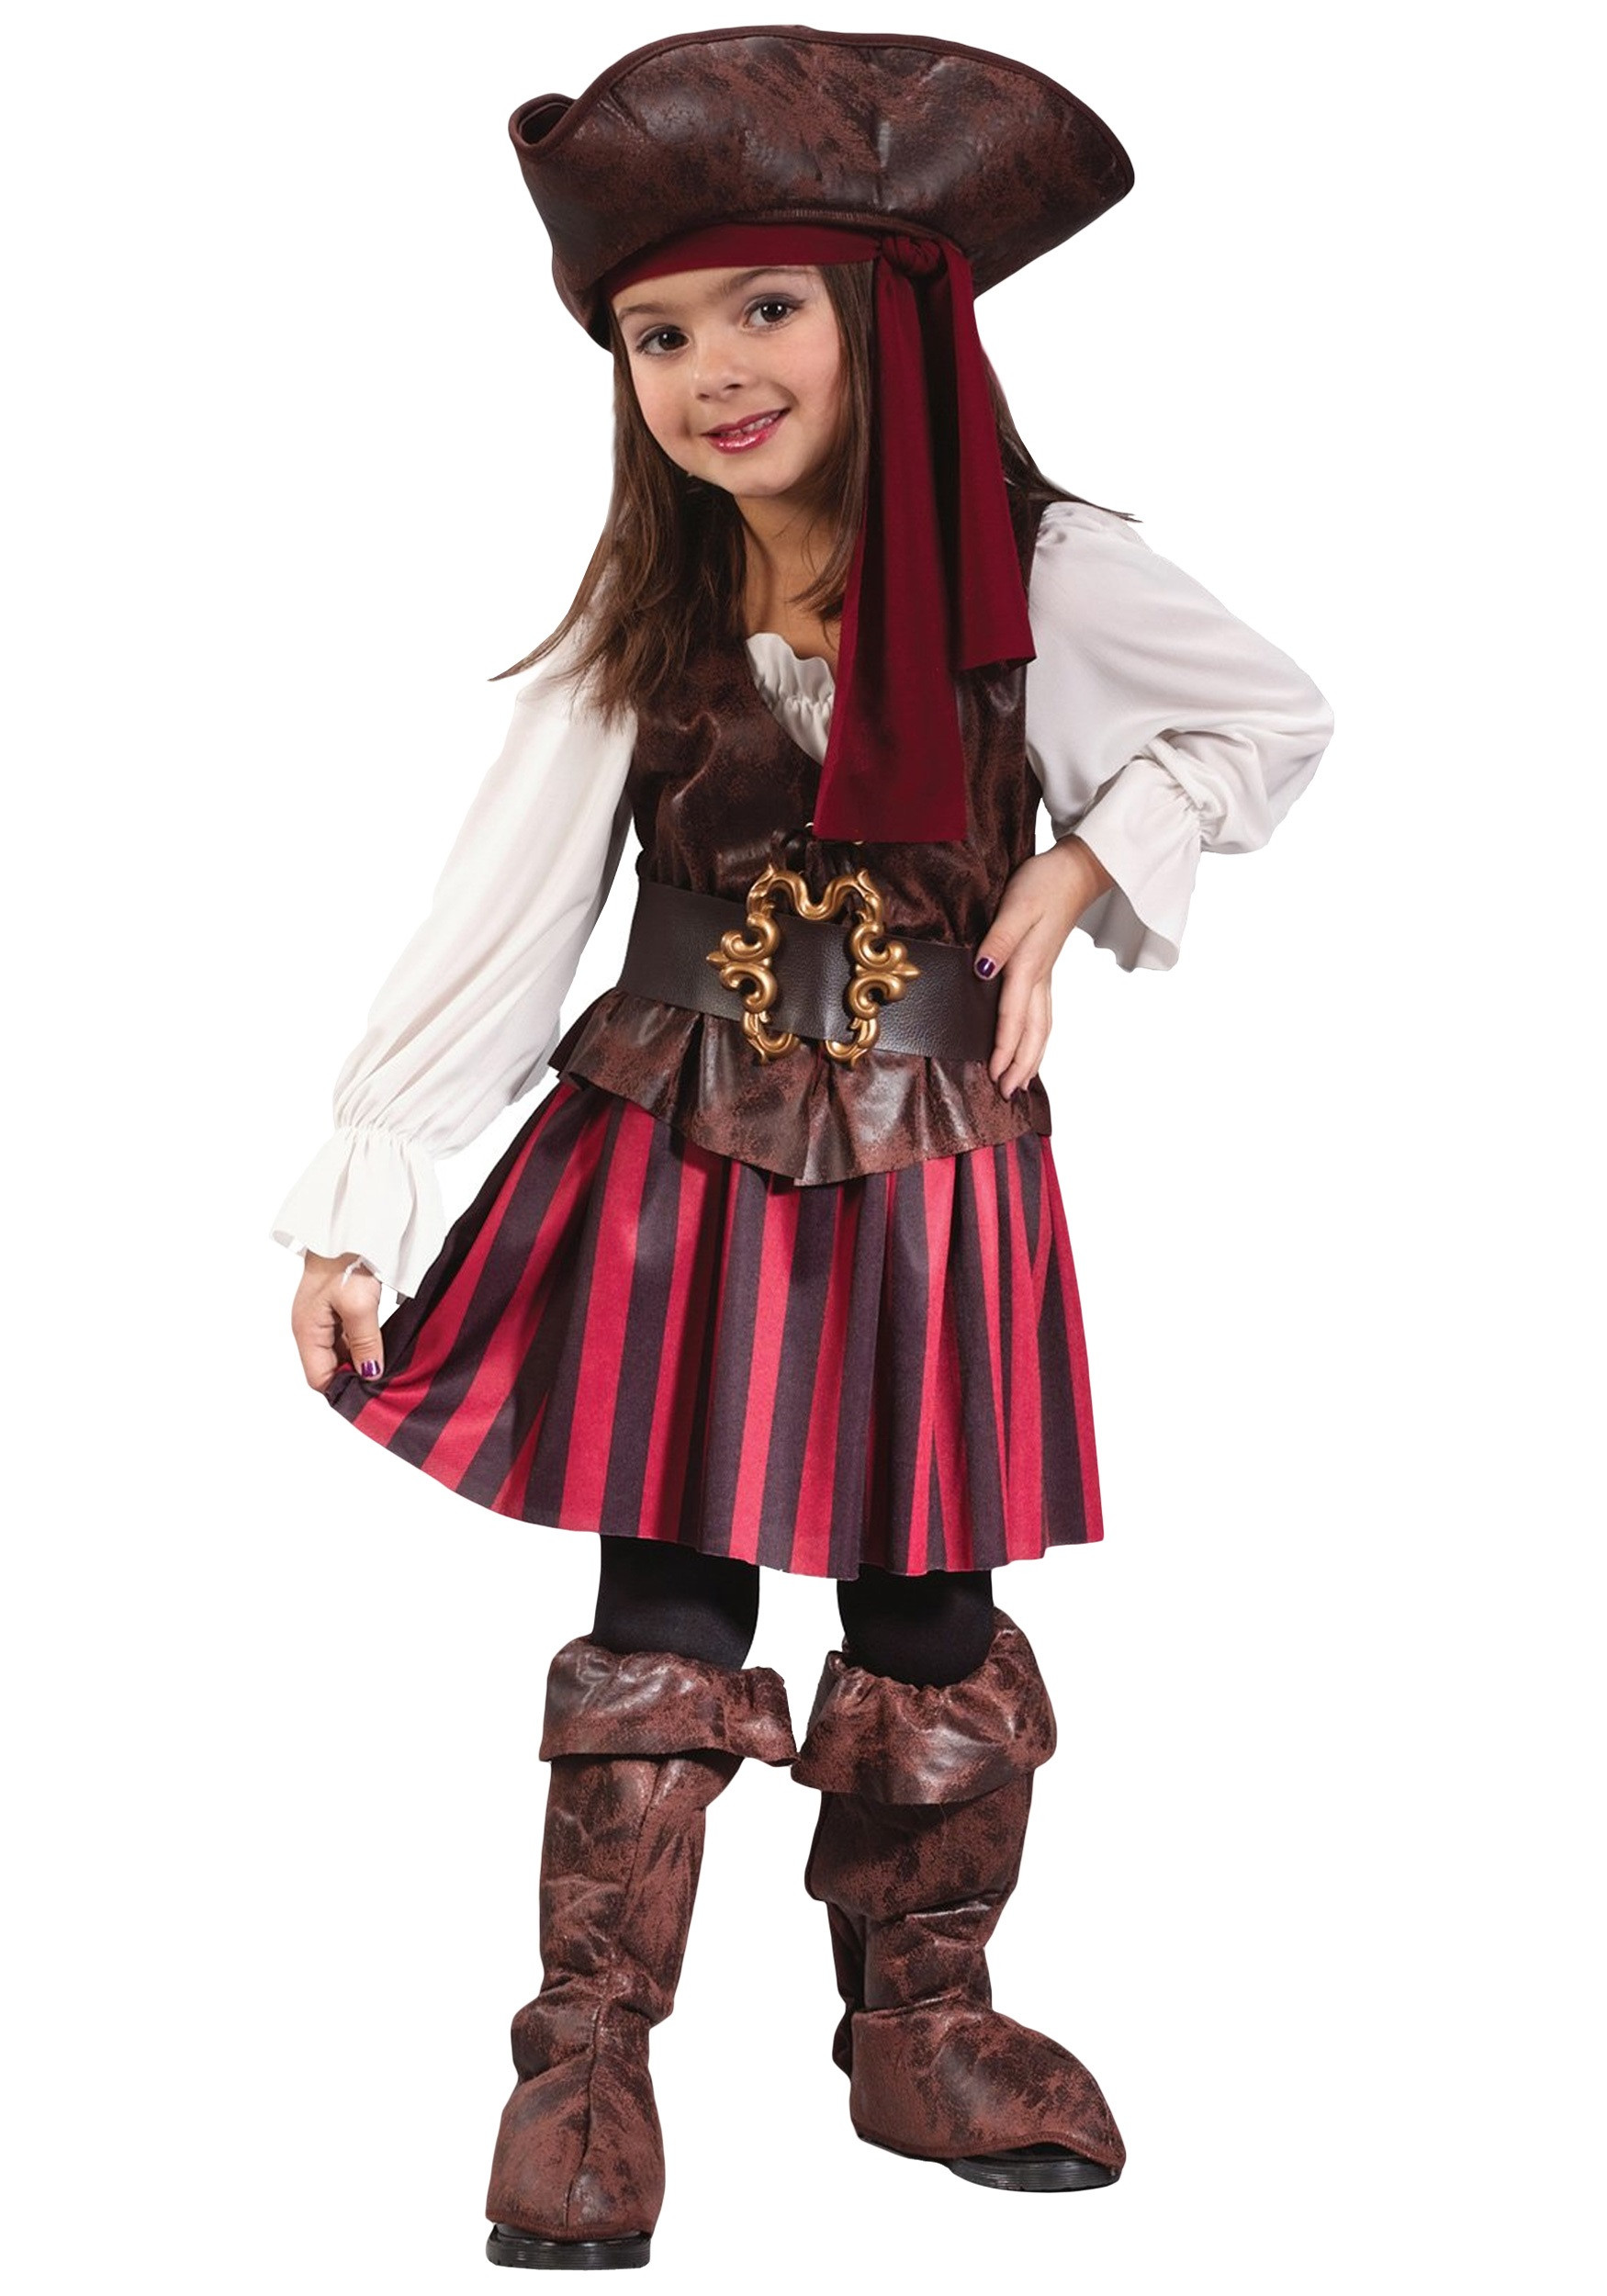 Best ideas about DIY Costumes For Girls . Save or Pin Caribbean Toddler Pirate Girl Costume Now.